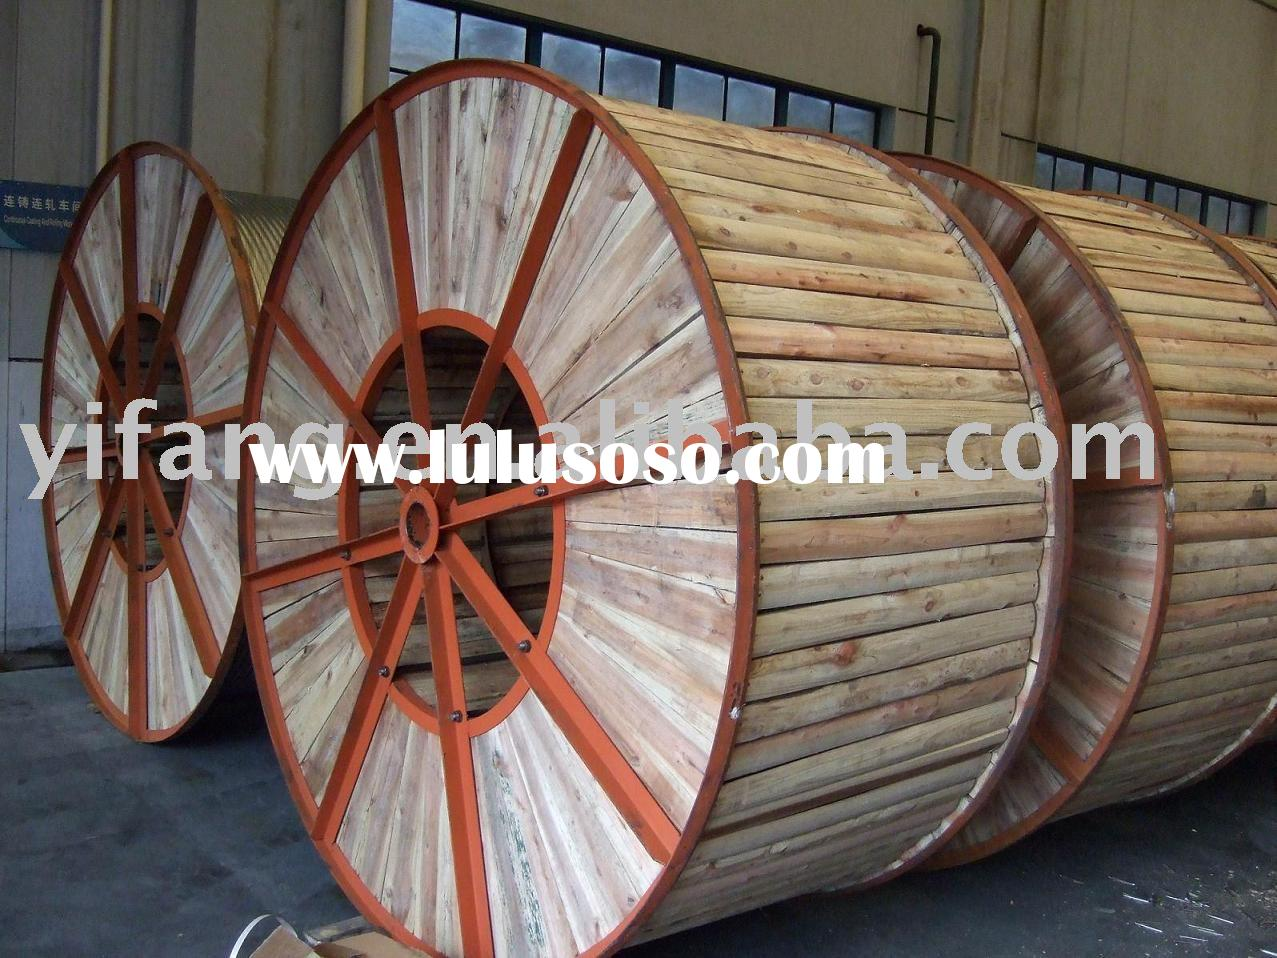 XLPE INSULATED HIGH VOLTAGE SUBMARINE CABLE